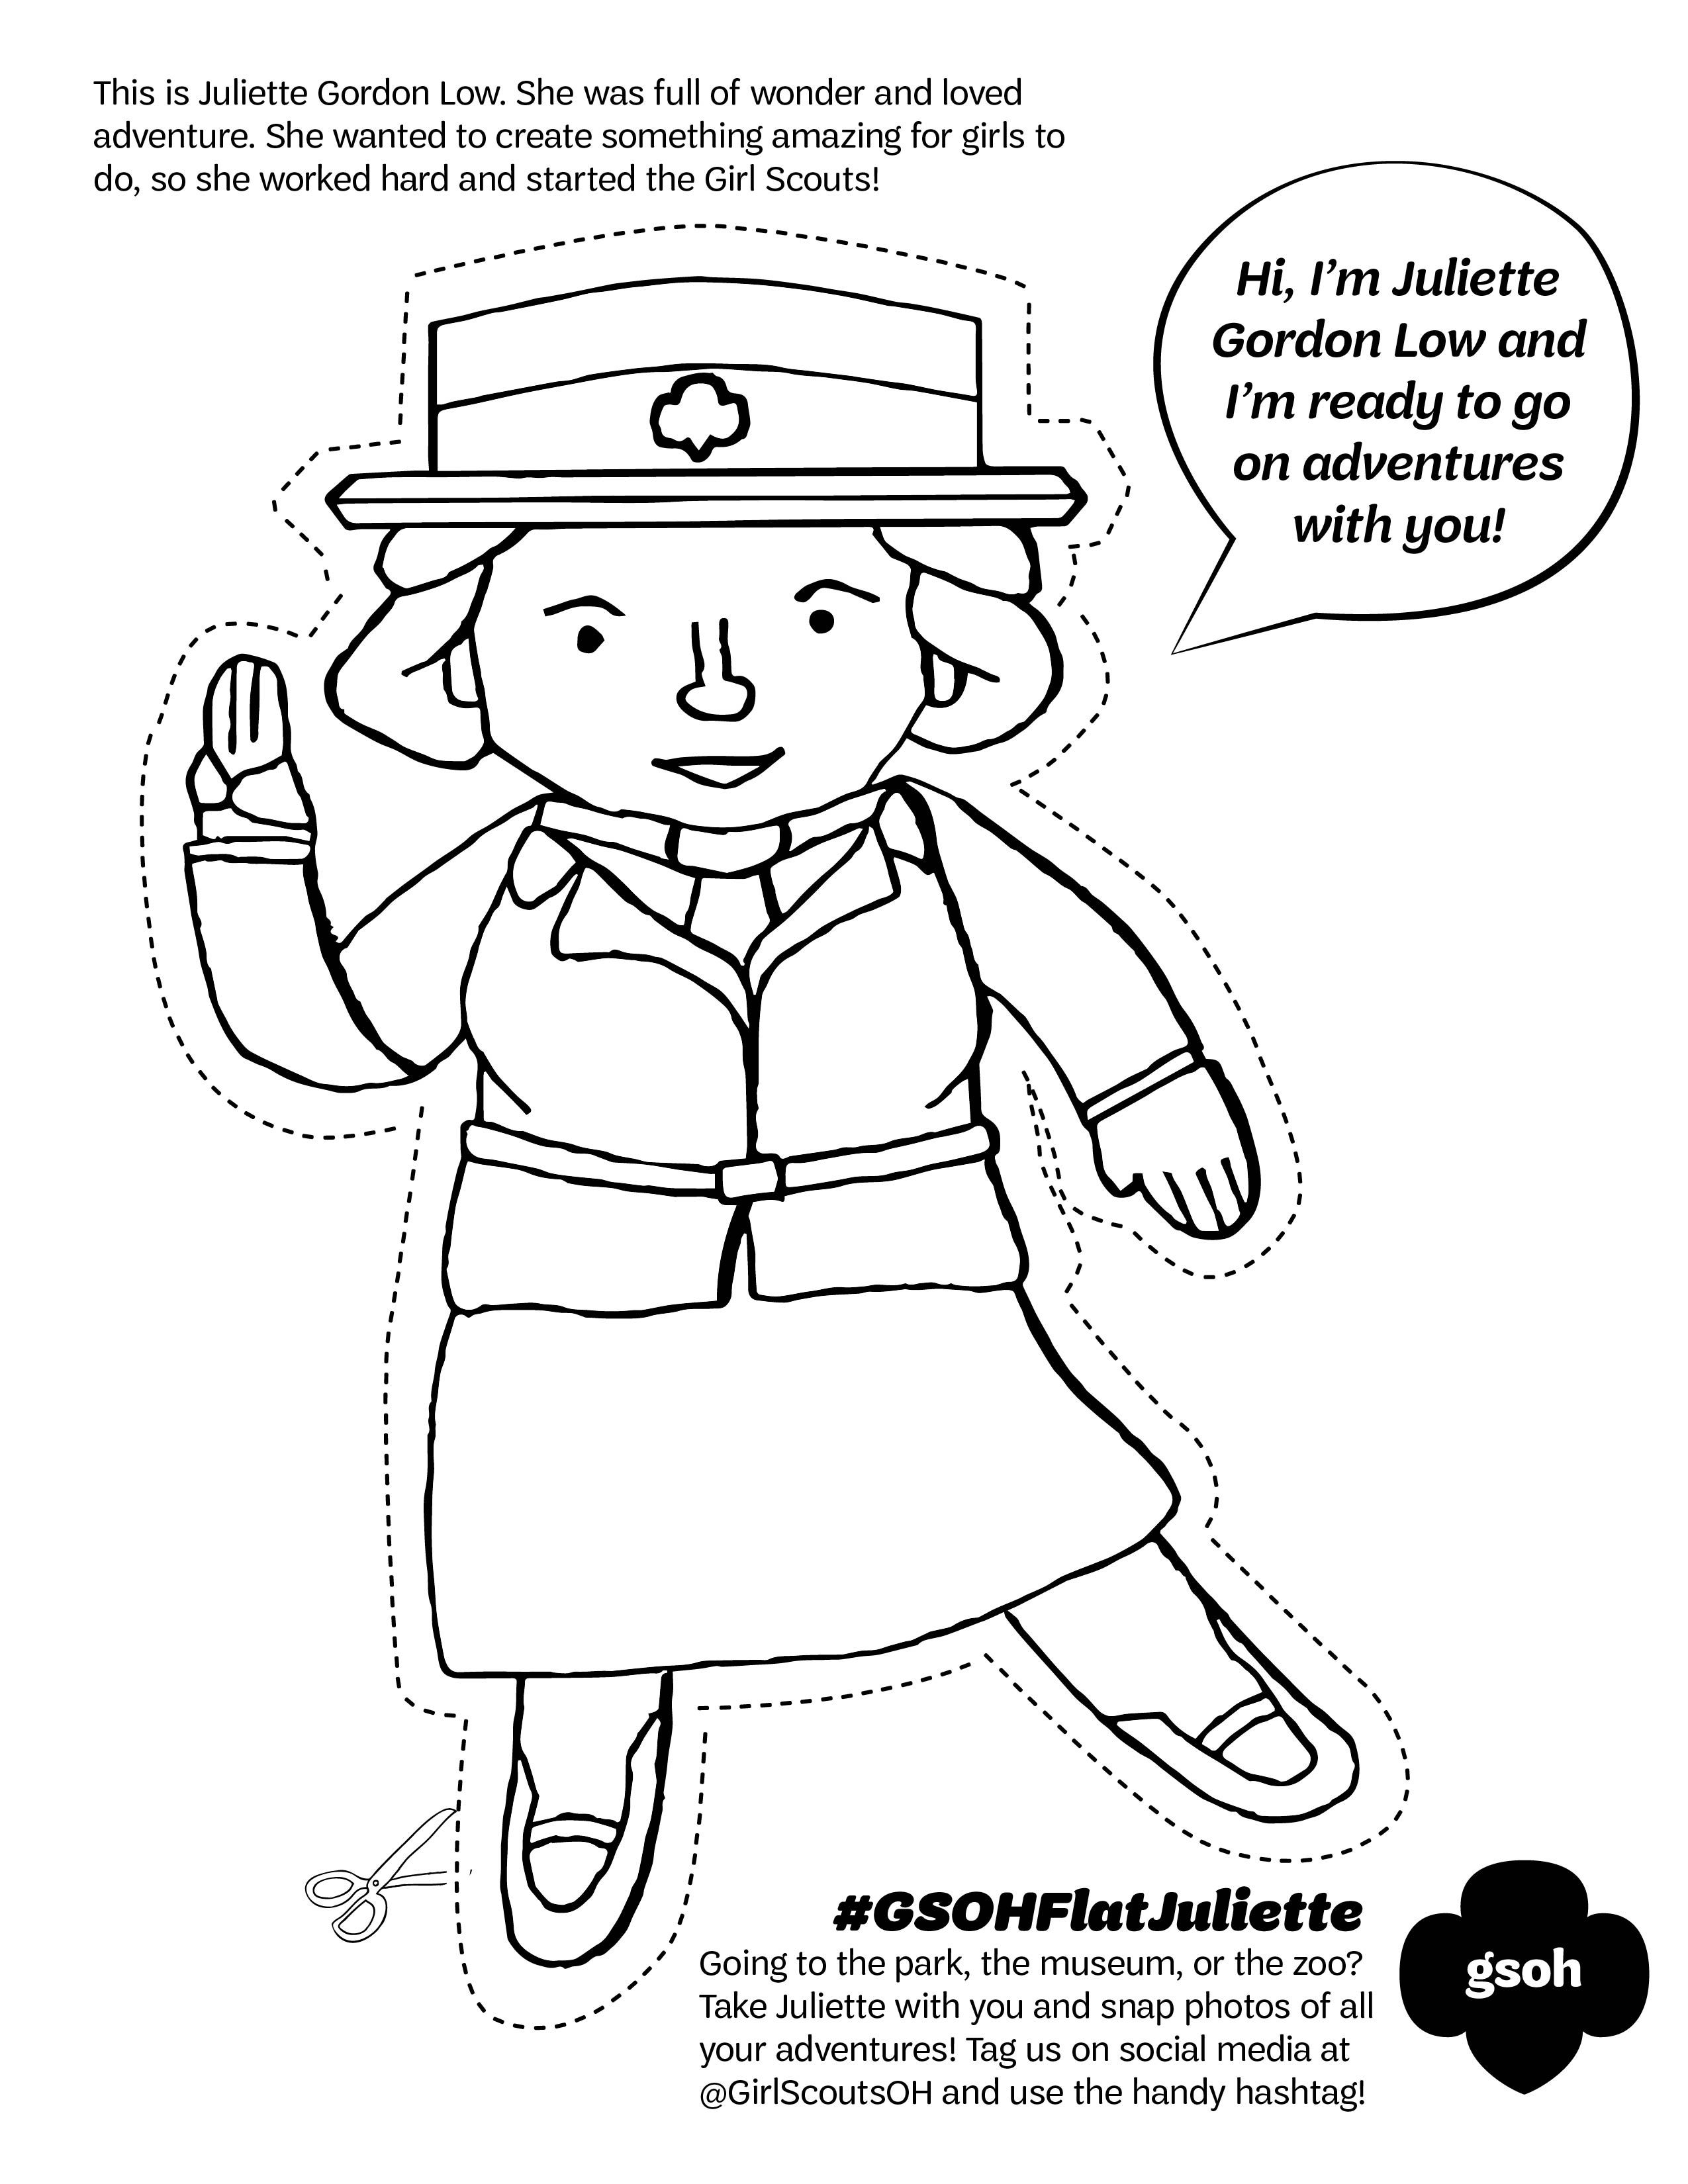 We Love This Flat Juliette Coloring Page From Gs Of Ohio